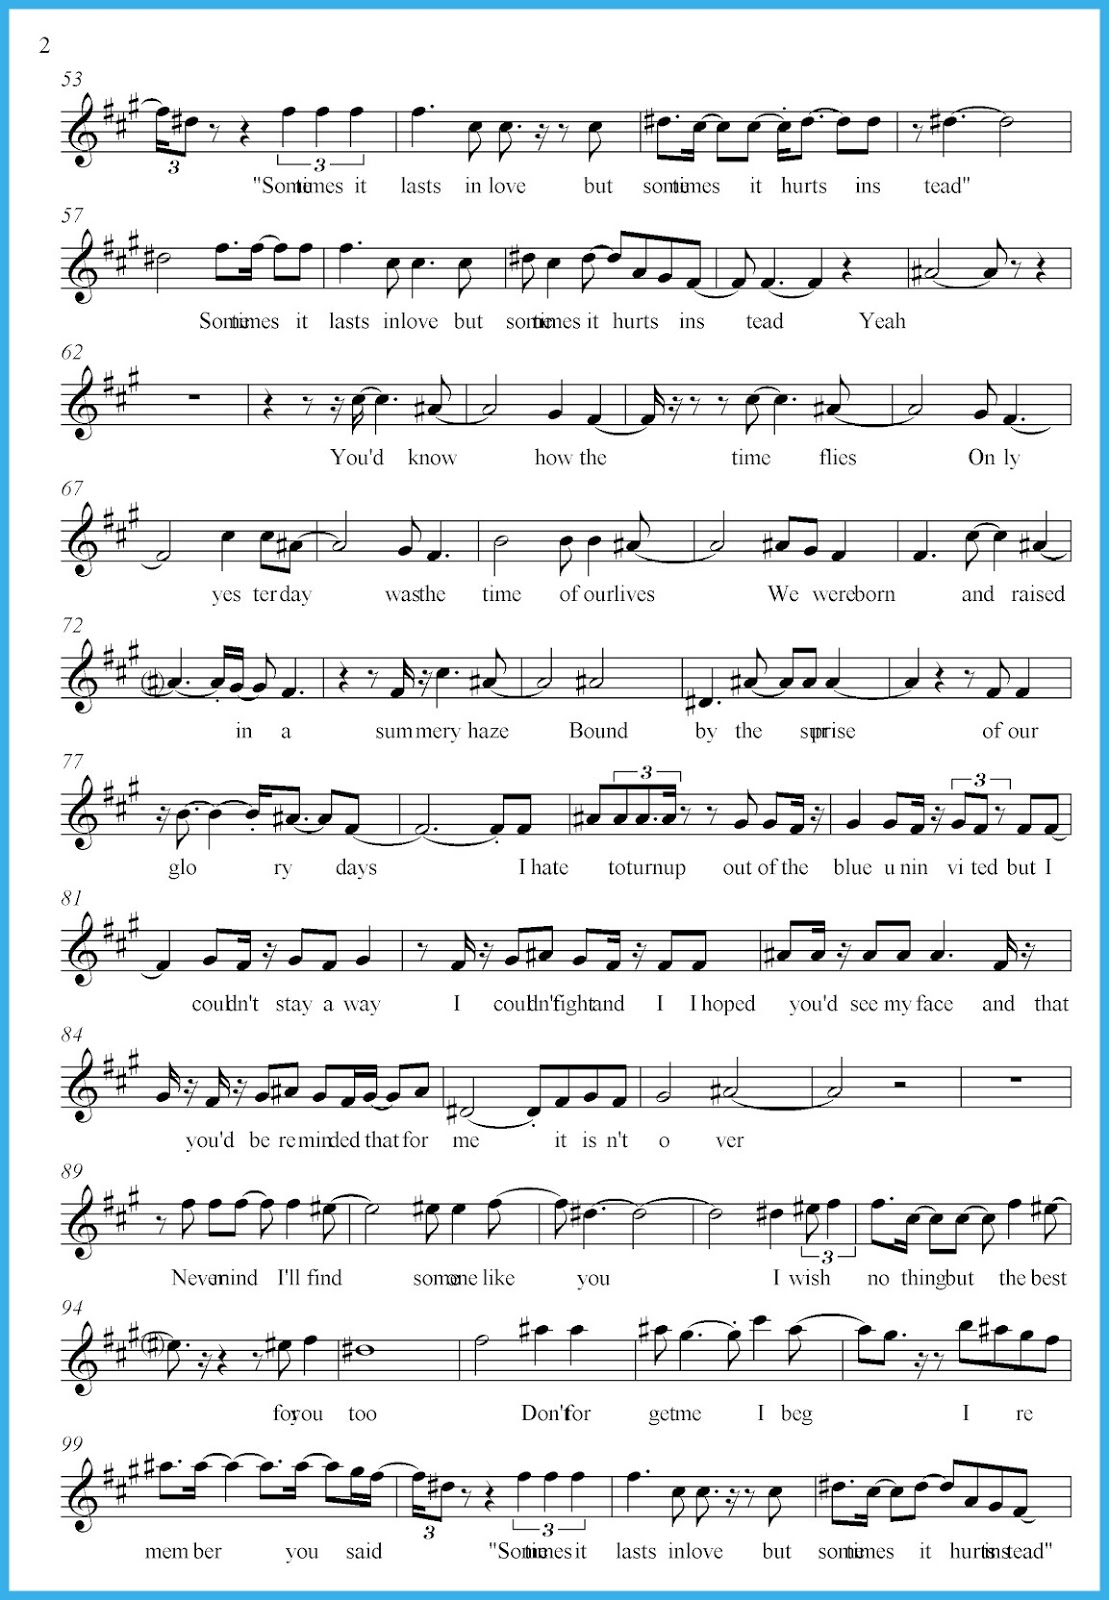 graphic relating to Free Printable Sheet Music for Trumpet called wolddotk